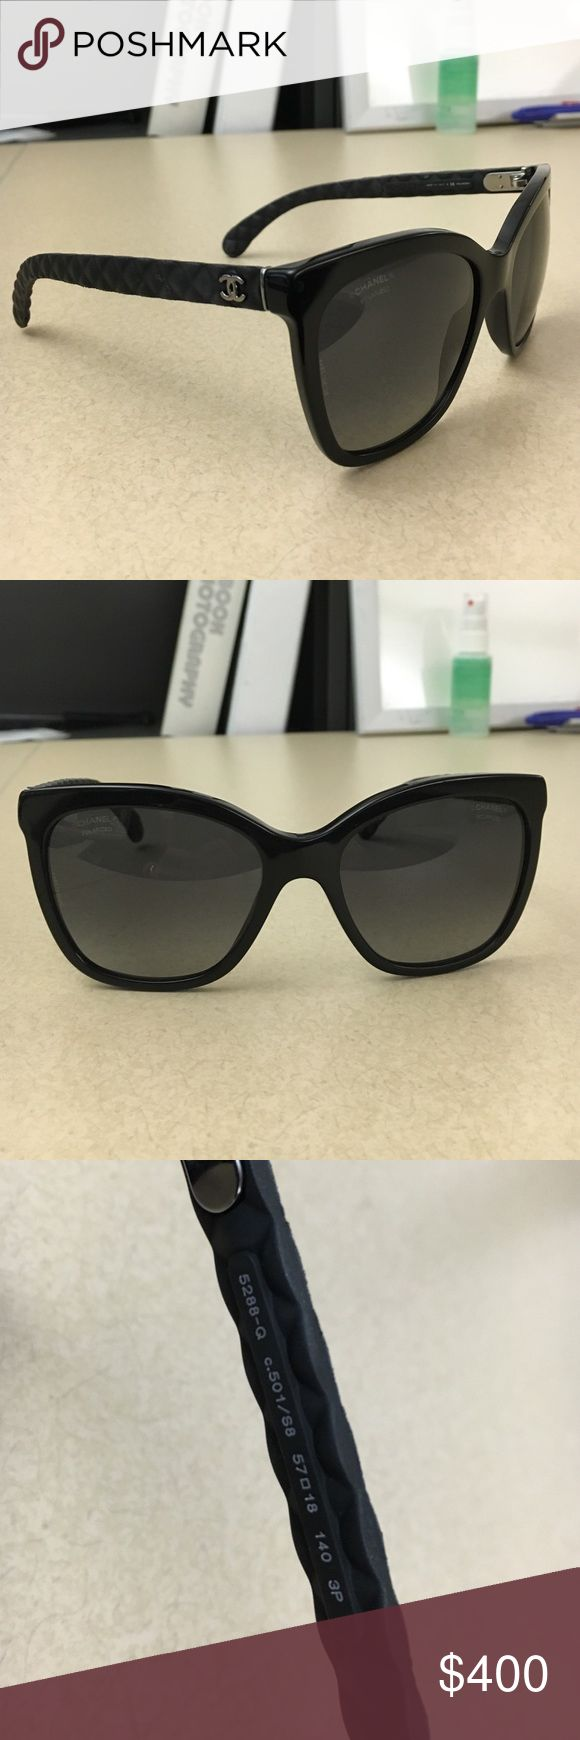 Black Chanel Sunglasses - Butterfly Quilt 5288 Black frame, polarized gray lenses. Butterfly quilting. Brand new. Material: Acetate, rubber, & goatskin Chanel Accessories Sunglasses